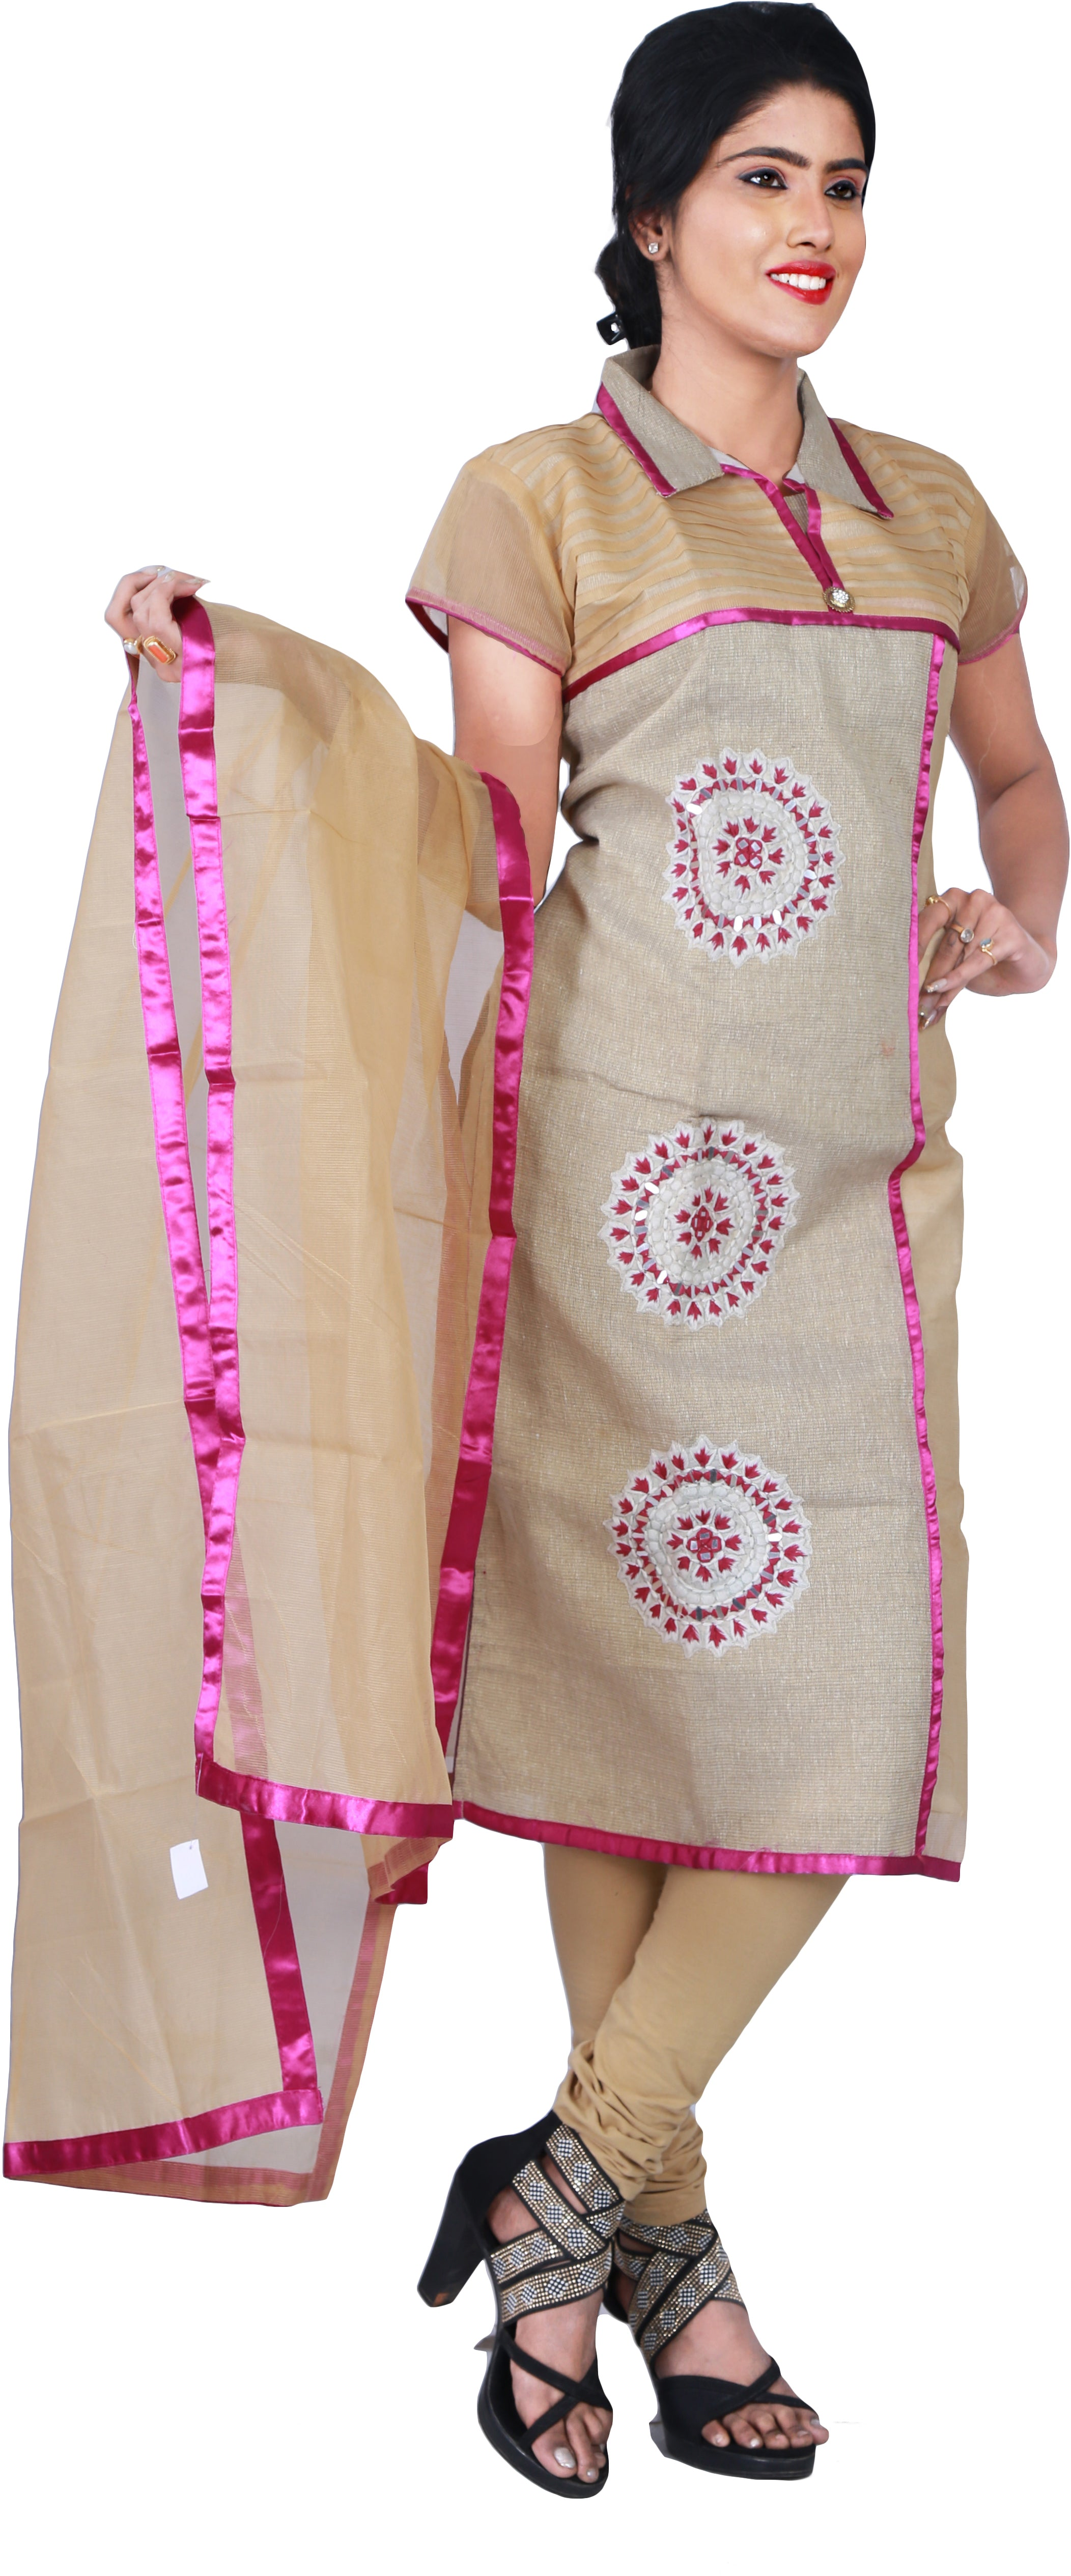 SMSAREE Beige Designer Casual Partywear Jute Thread & Mirror Hand Embroidery Work Stylish Women Kurti Kurta With Free Matching Leggings KB298